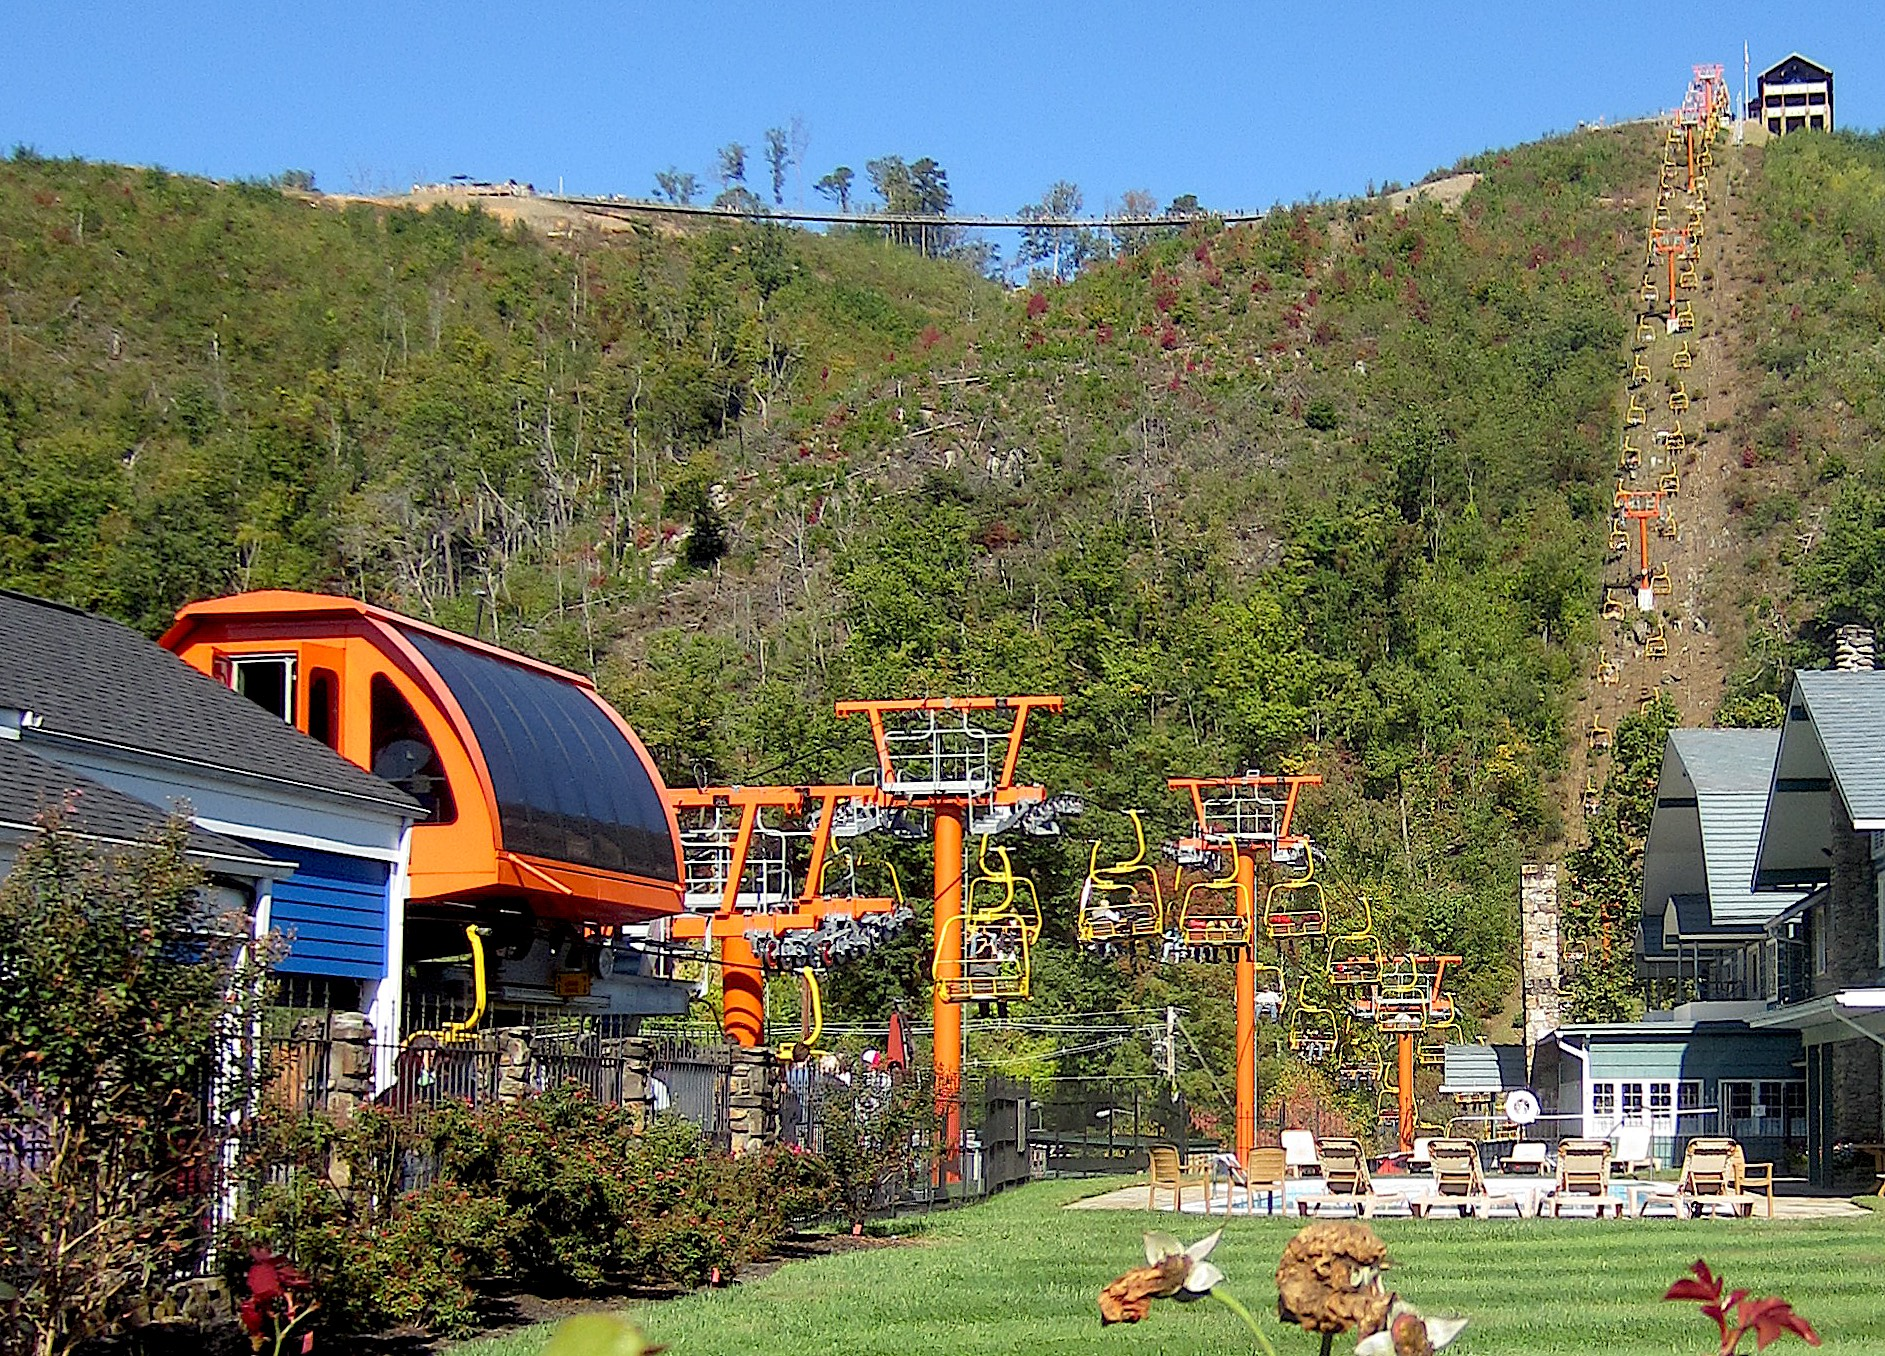 Spectacular Experience In The Smokies Gatlinburg Skybridge Park World Online Theme Park Amusement Park And Attractions Industry News